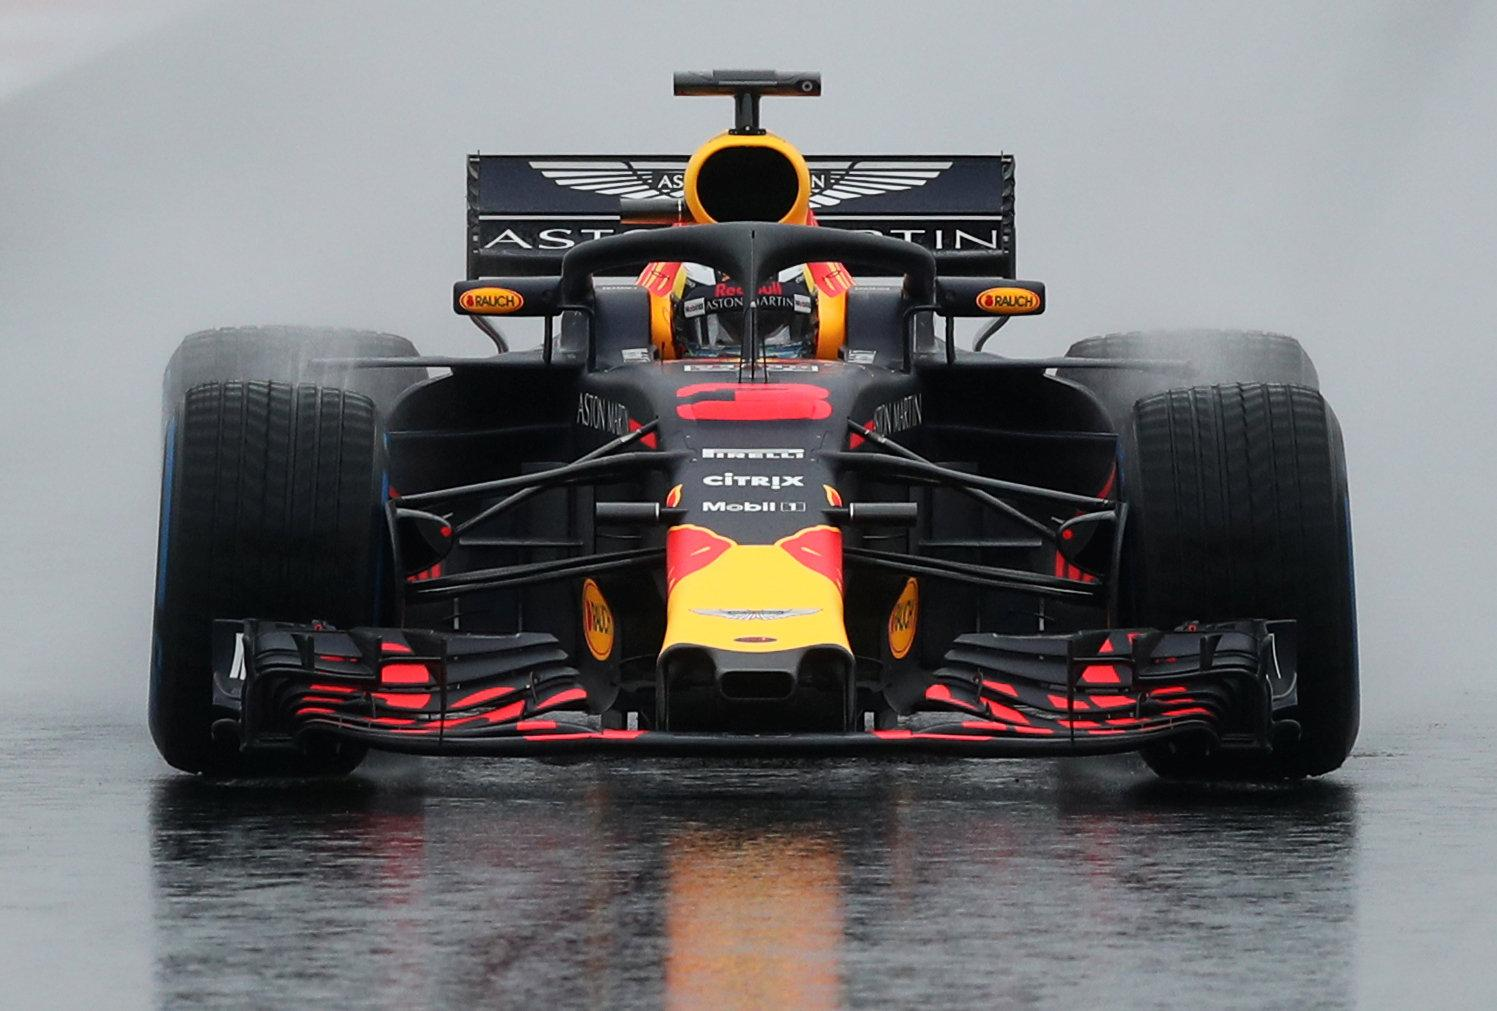 Daniel Ricciardo managed to test the tyres in the brutal conditions in Barcelona